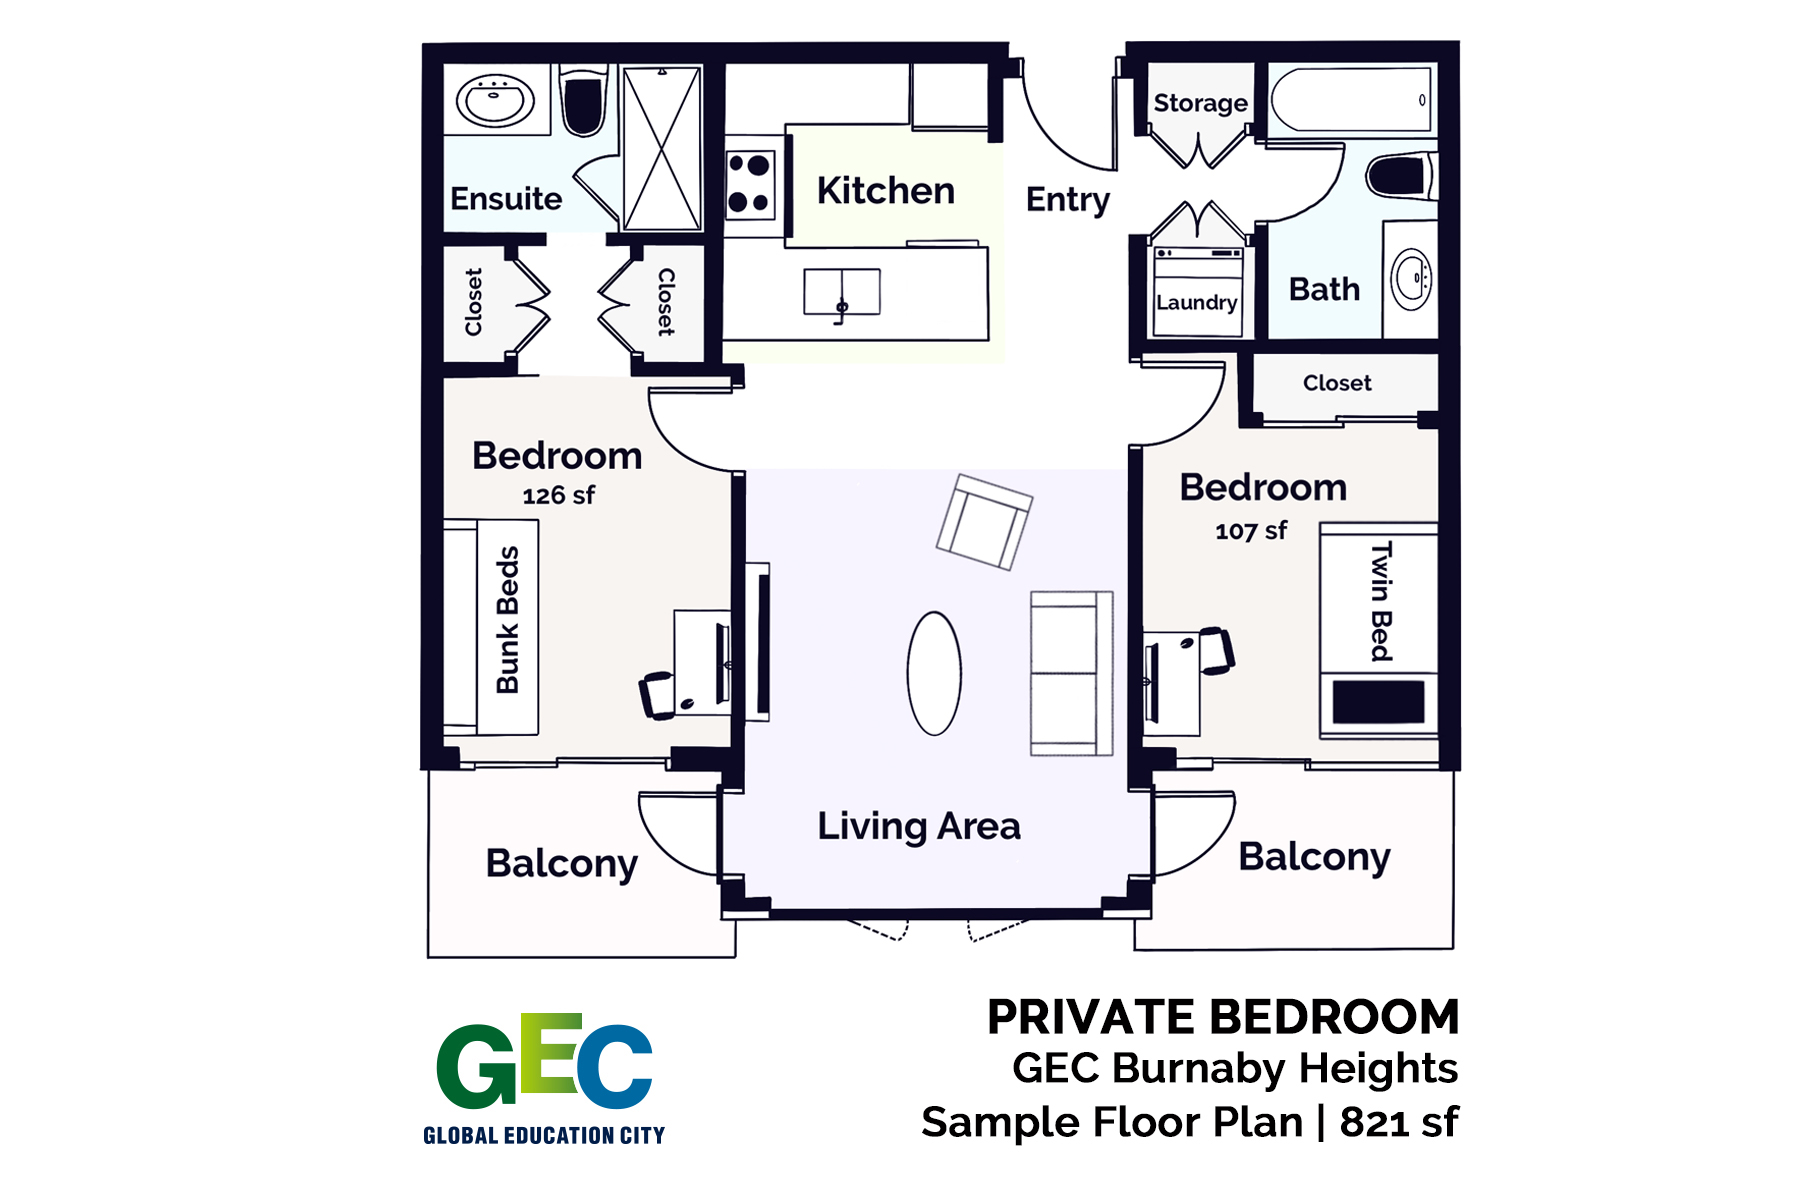 Private Bedroom floor plan